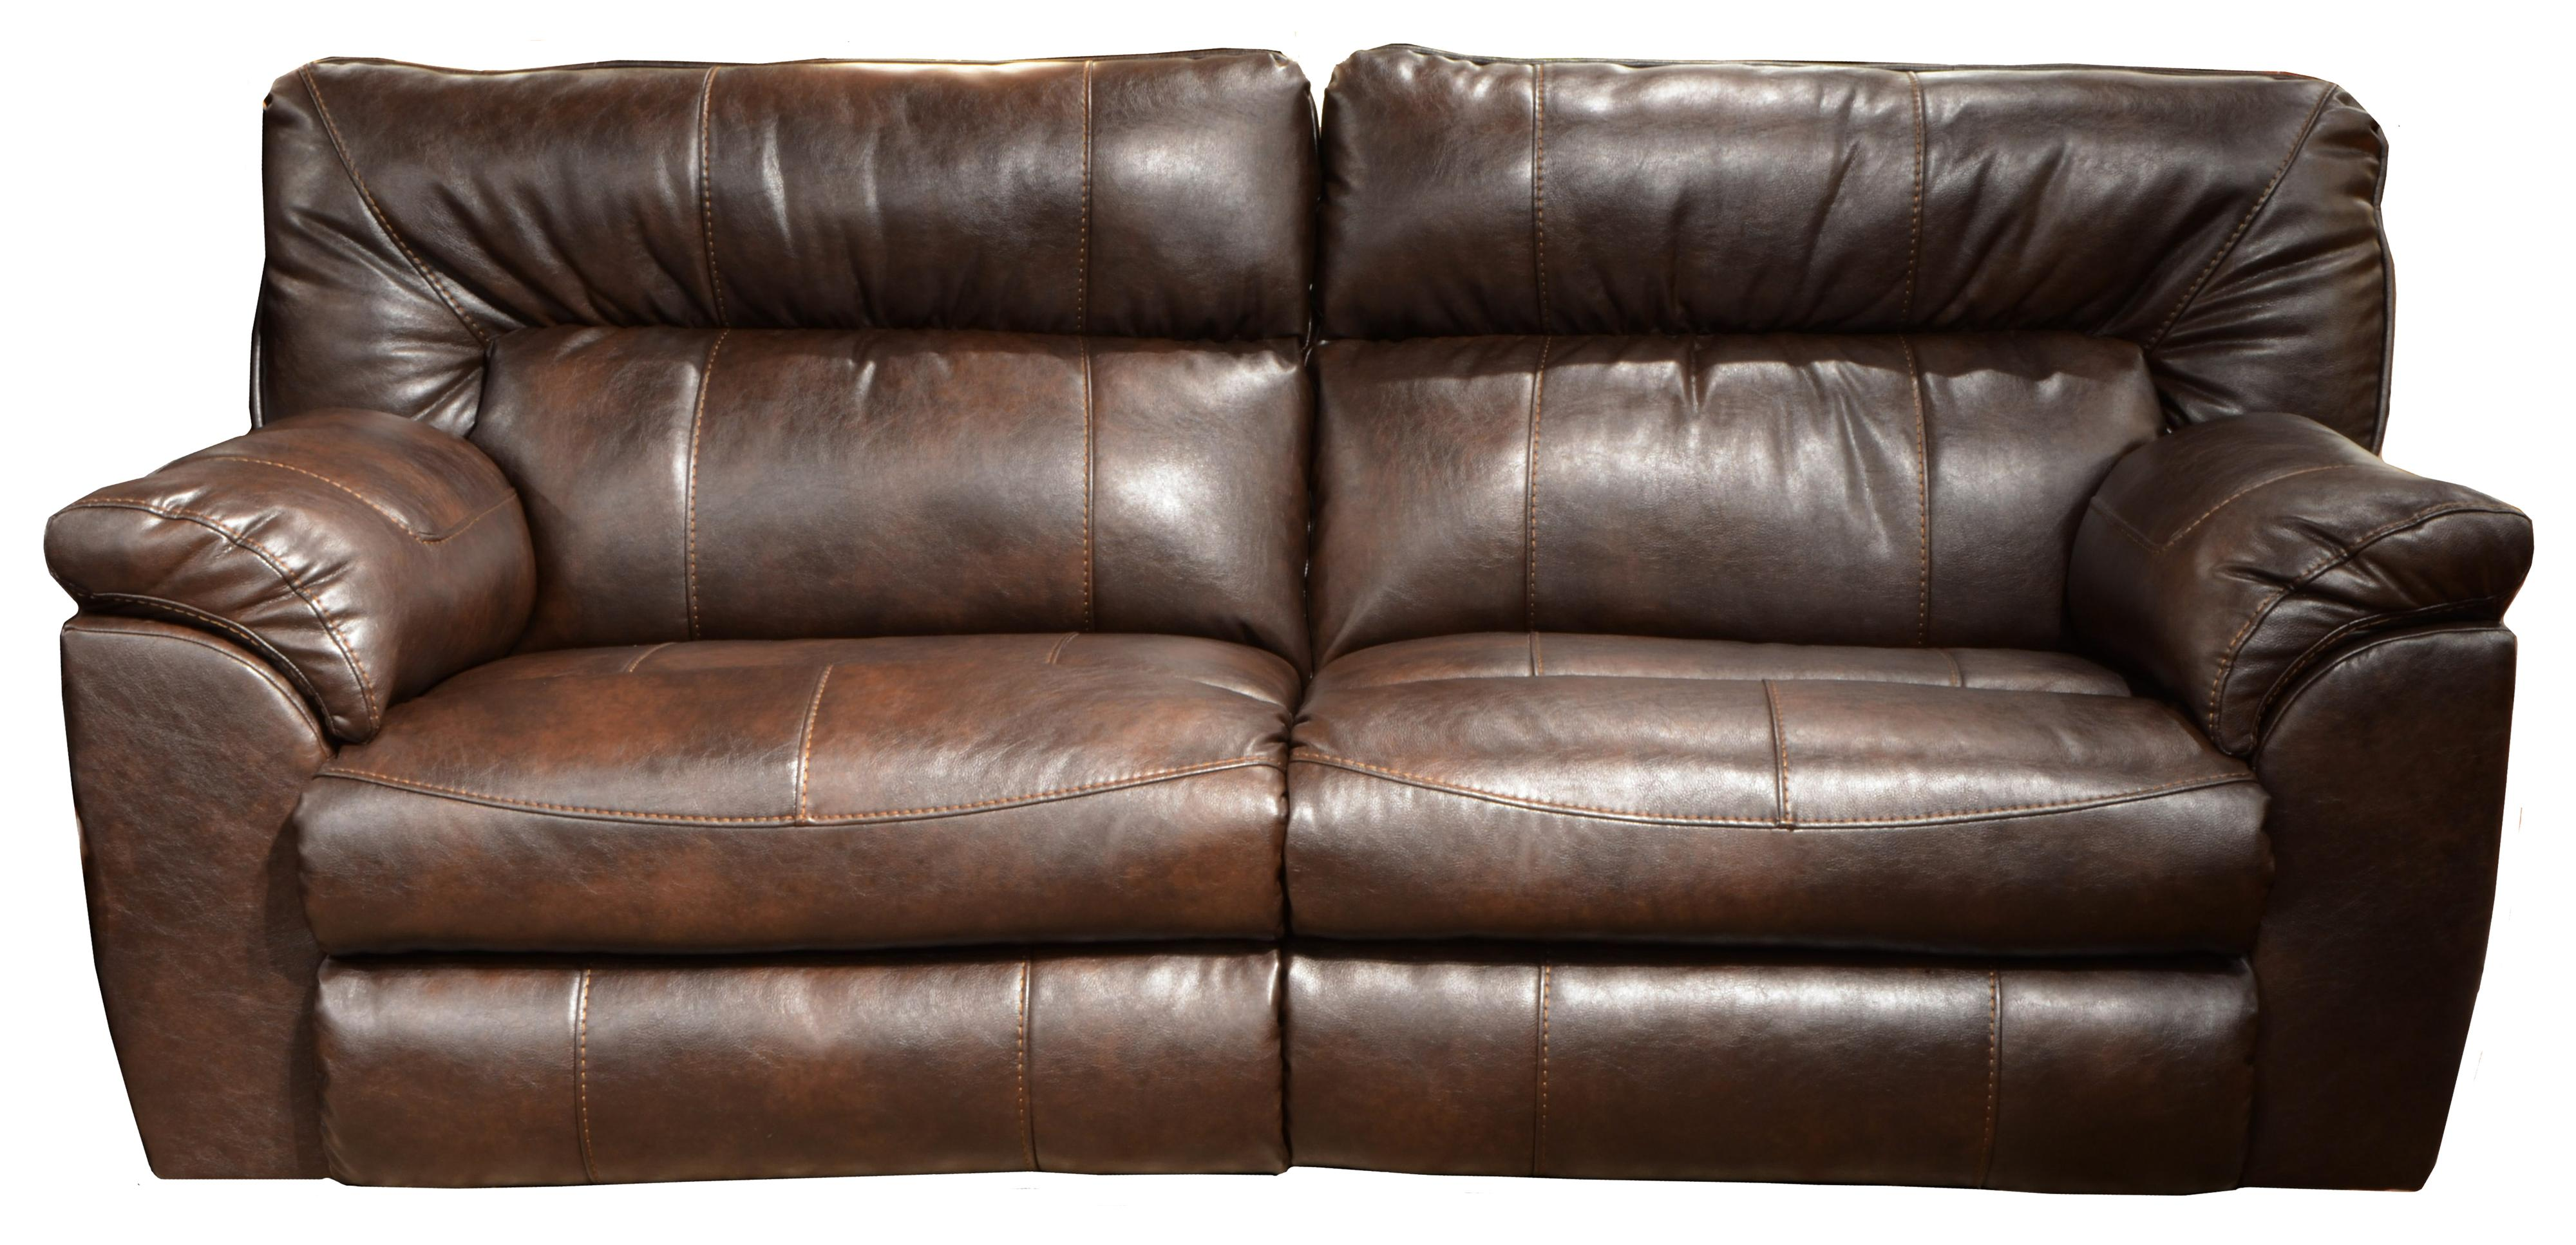 futura recliner sofa power electric homeworld reclining furniture leather item products number burke